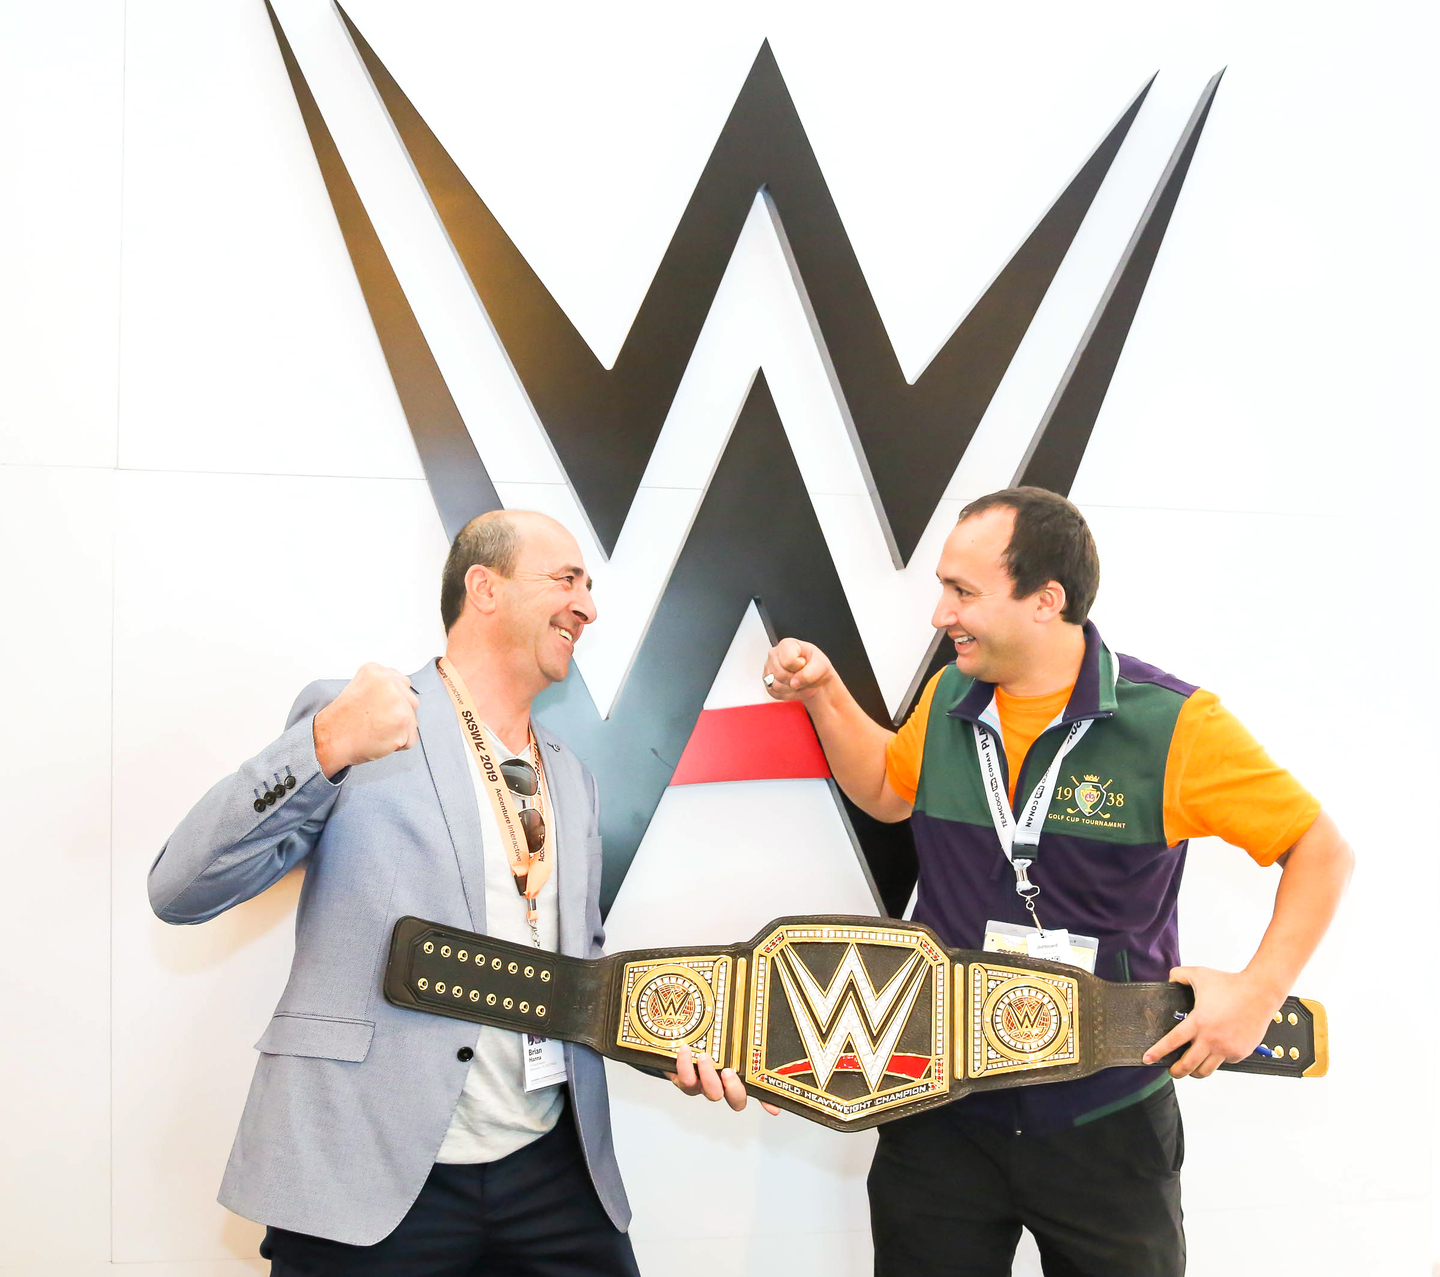 Be sure to stop by The WWE Lounge at the JW Marriott. Photo by Diego Donamaria